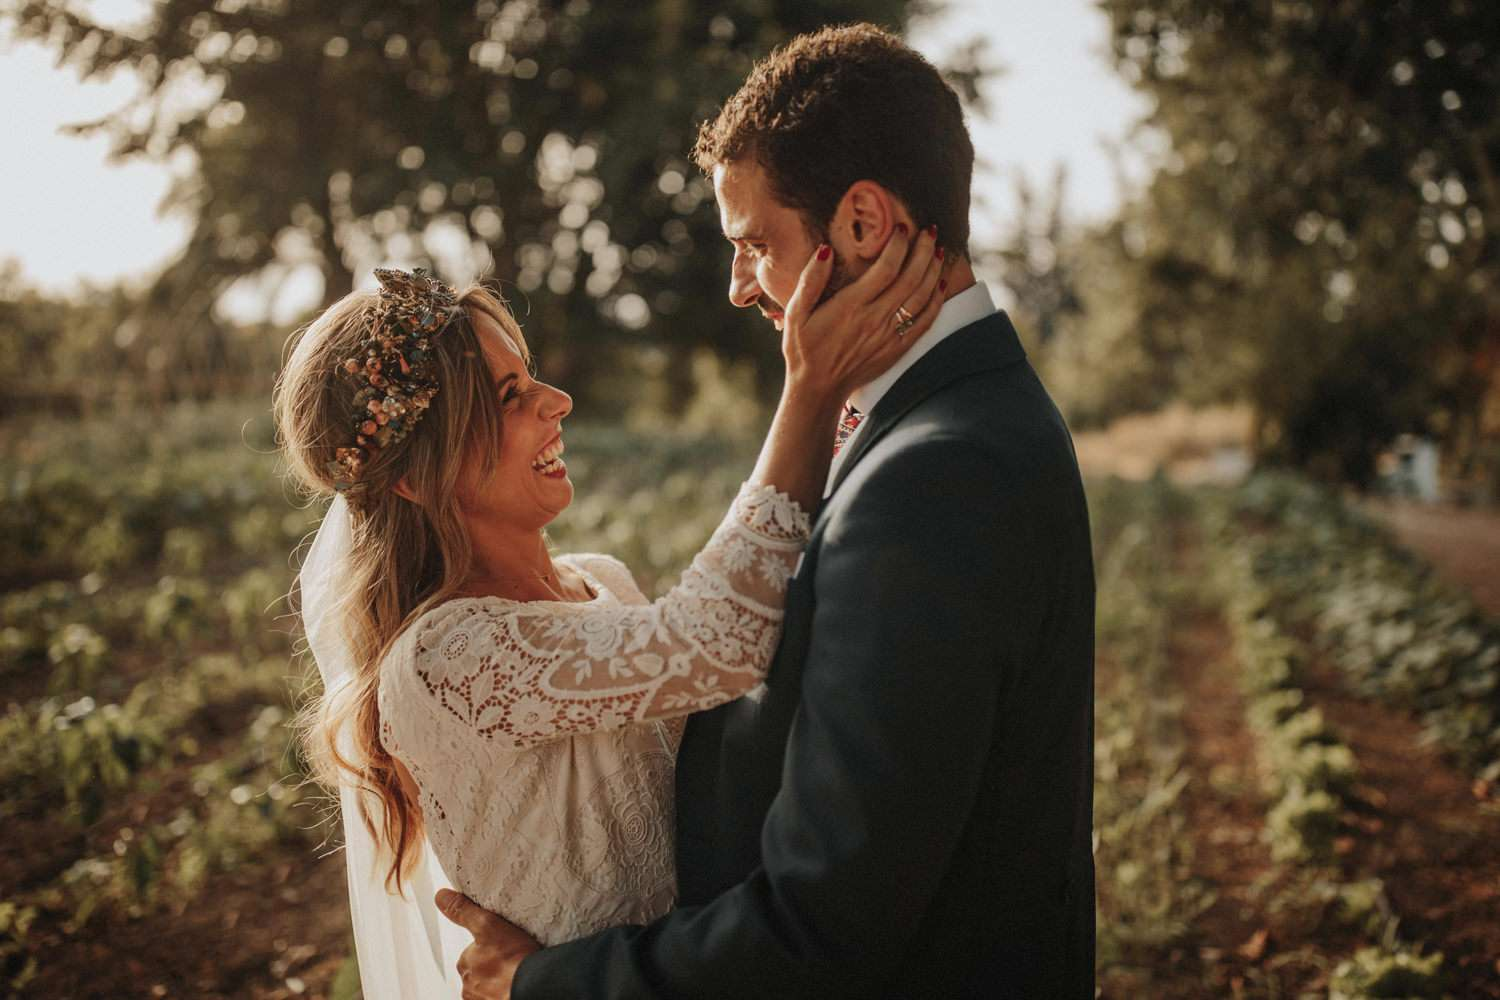 Bride and groom in embrace